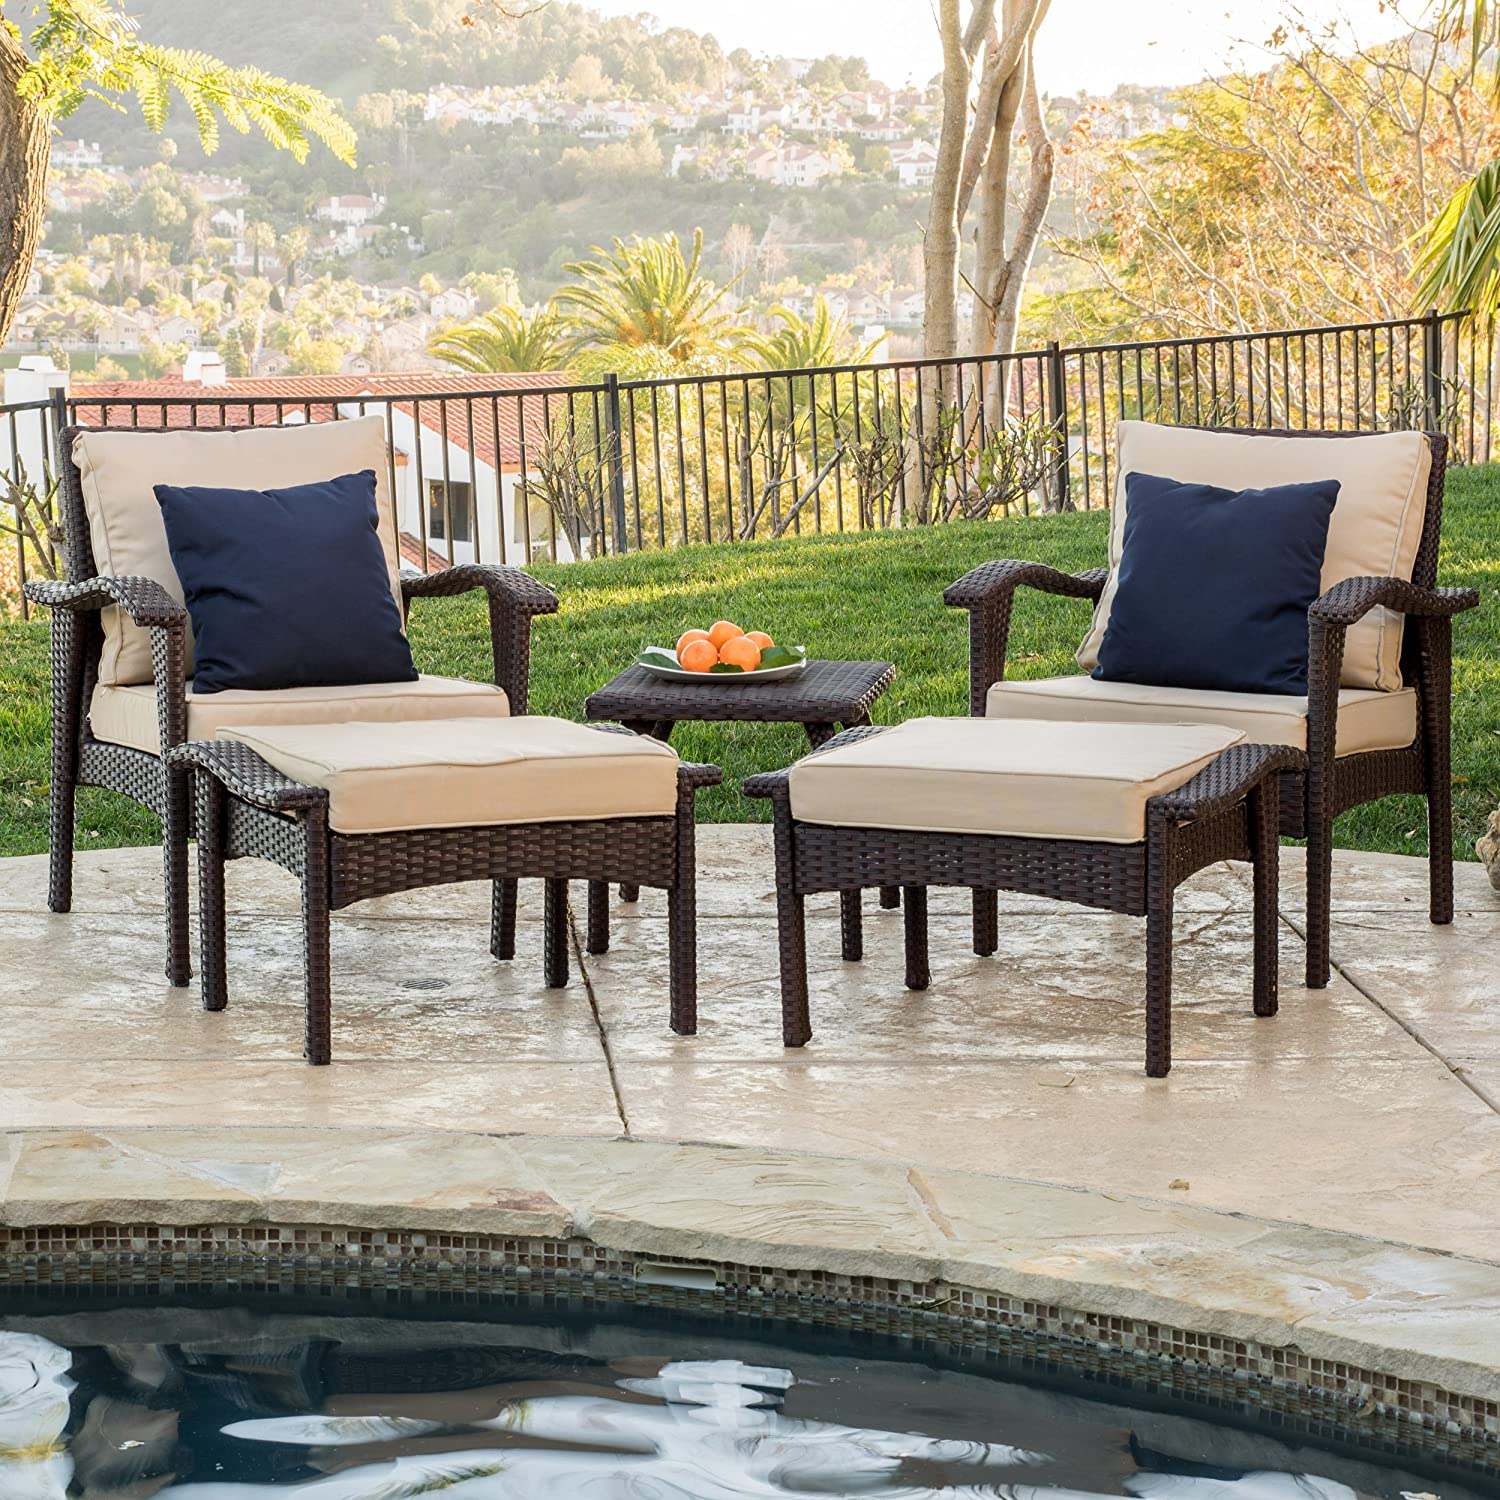 Amazon Maui Outdoor 5 piece Brown Wicker Seating Set with